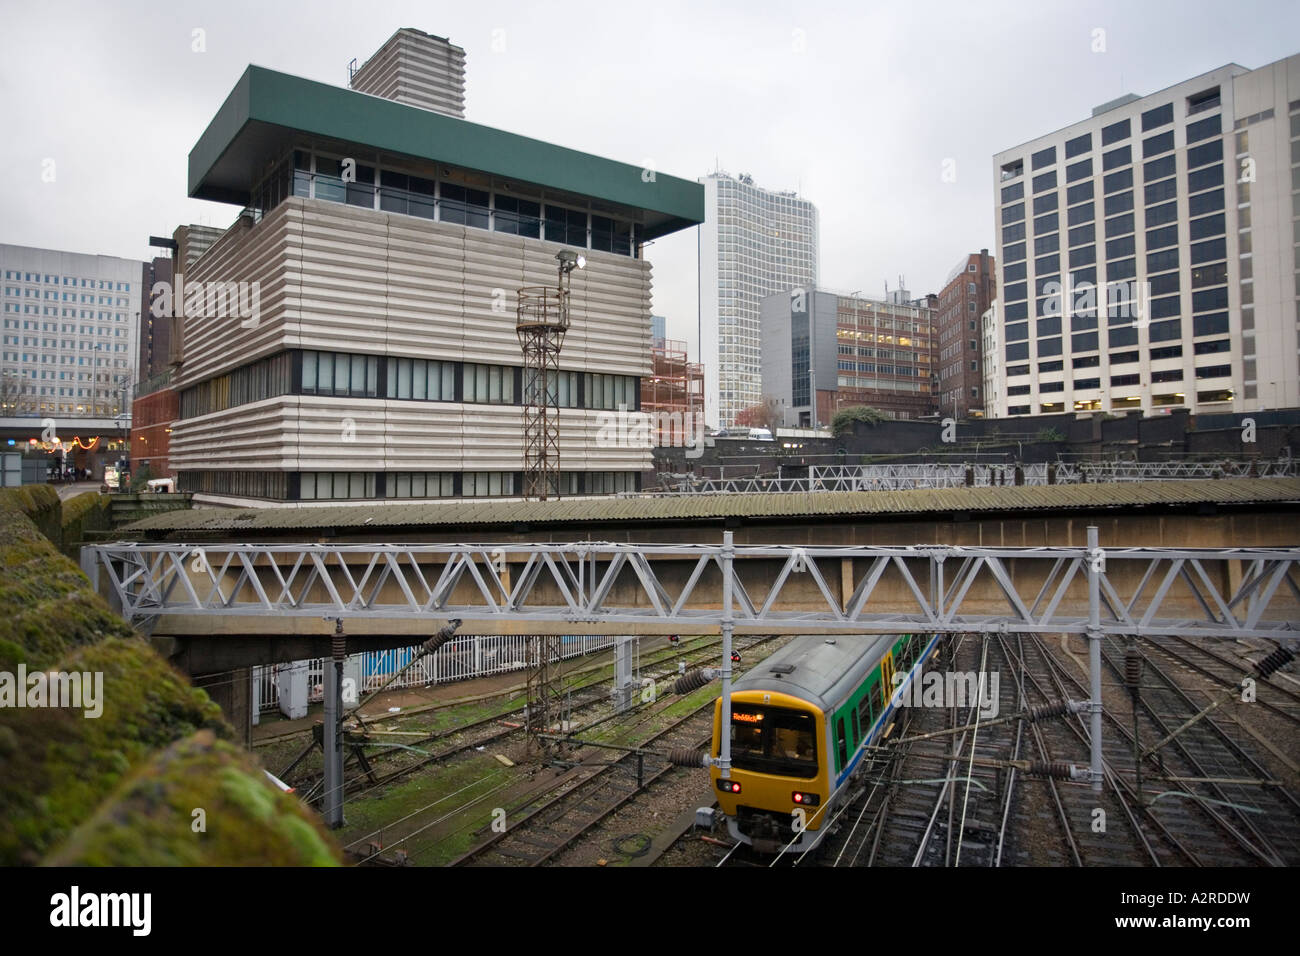 The Grade 2 listed corrugated concrete signal box overlooking rails leading into New Street station in Birmingham - Stock Image